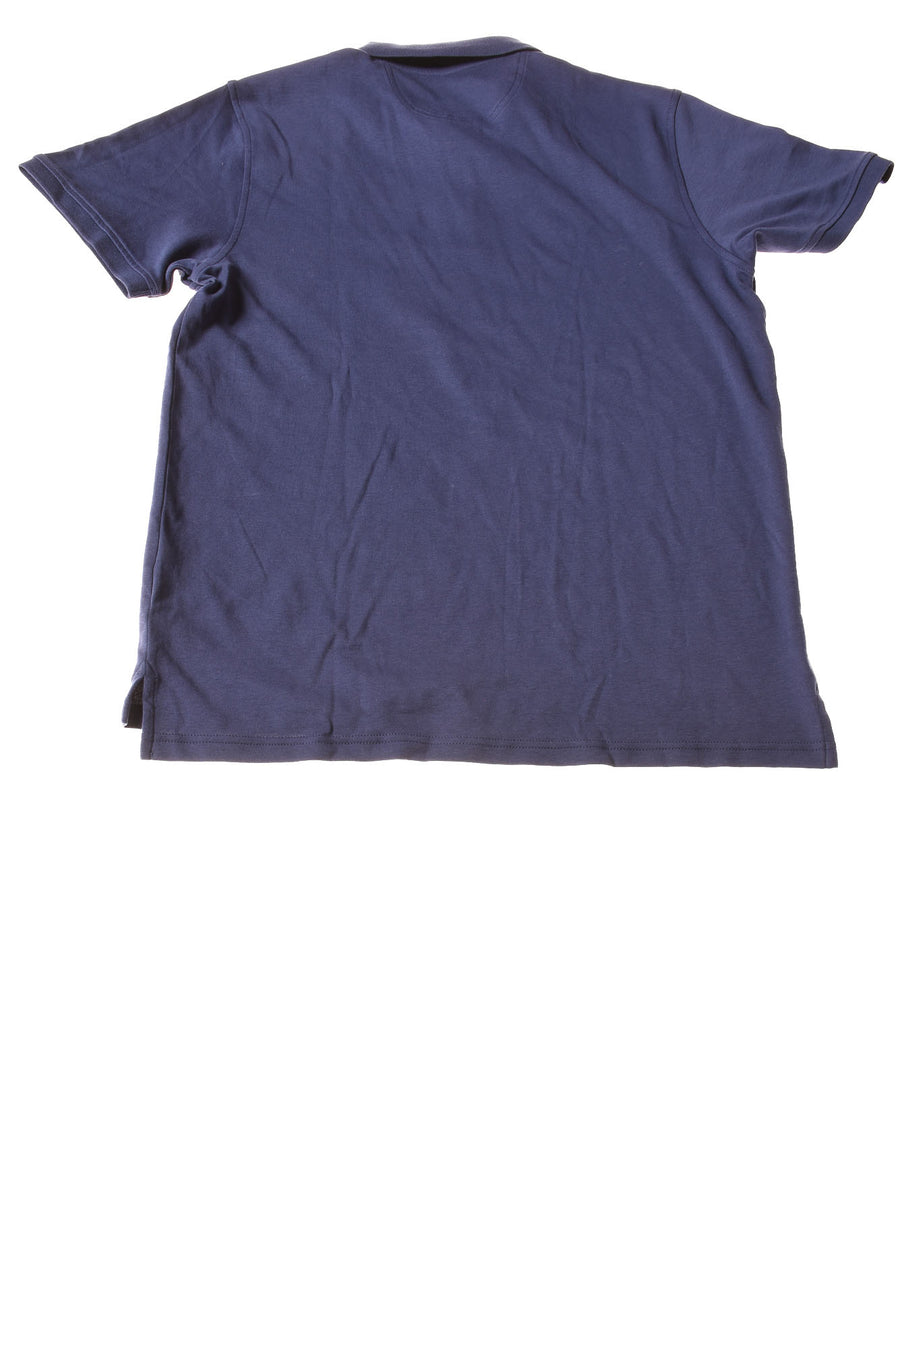 USED No Brand Men's Shirt Medium Blue